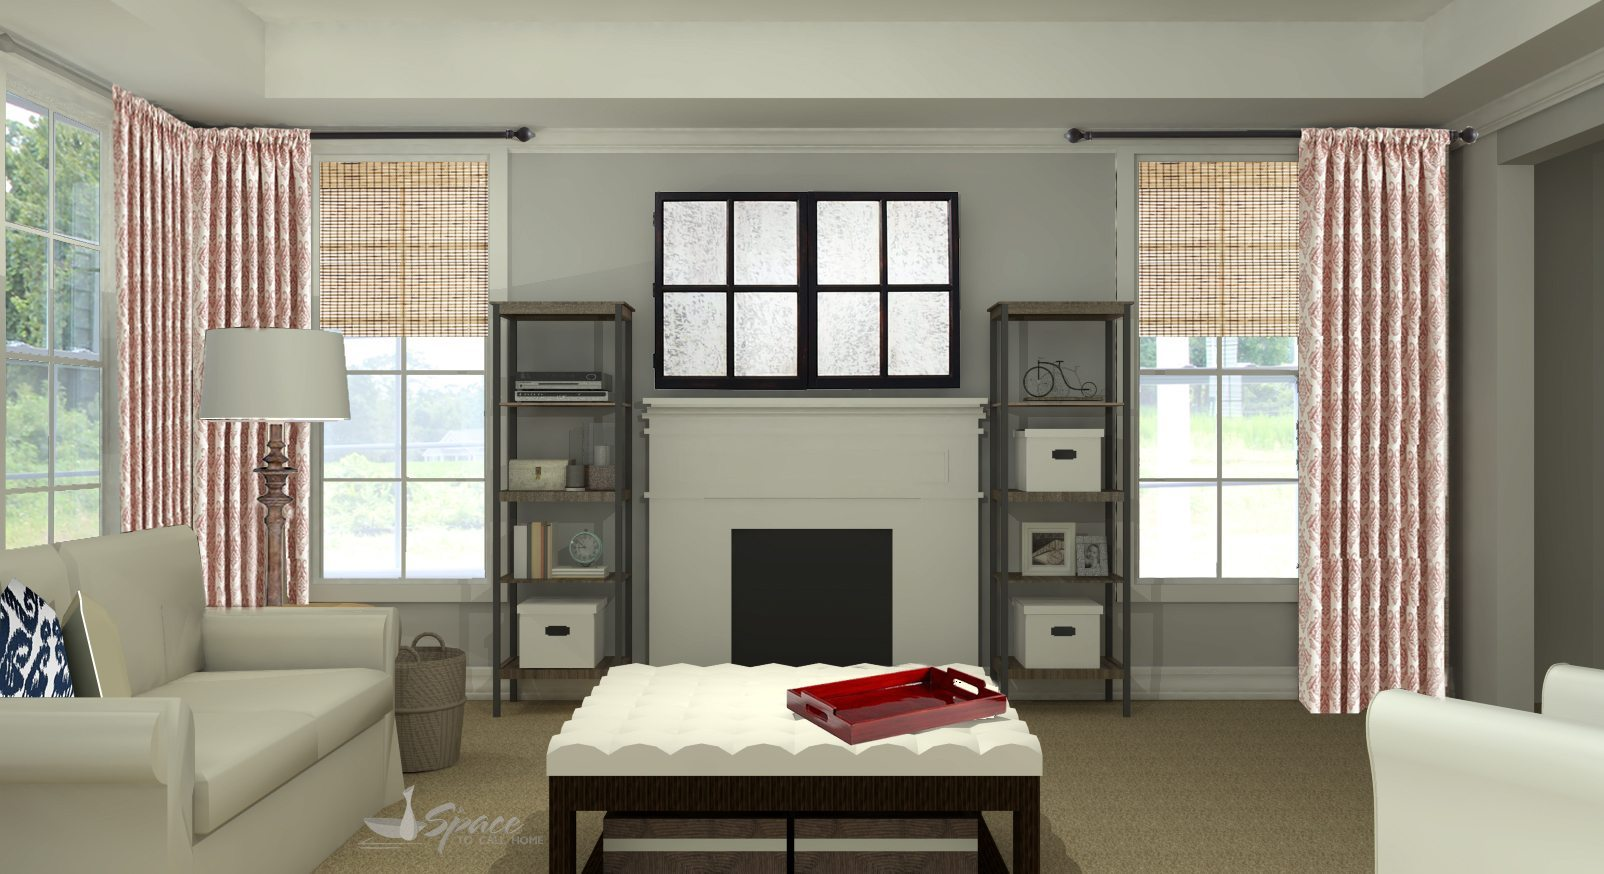 Virtual room design create your dream room a space to for Virtual bedroom designer